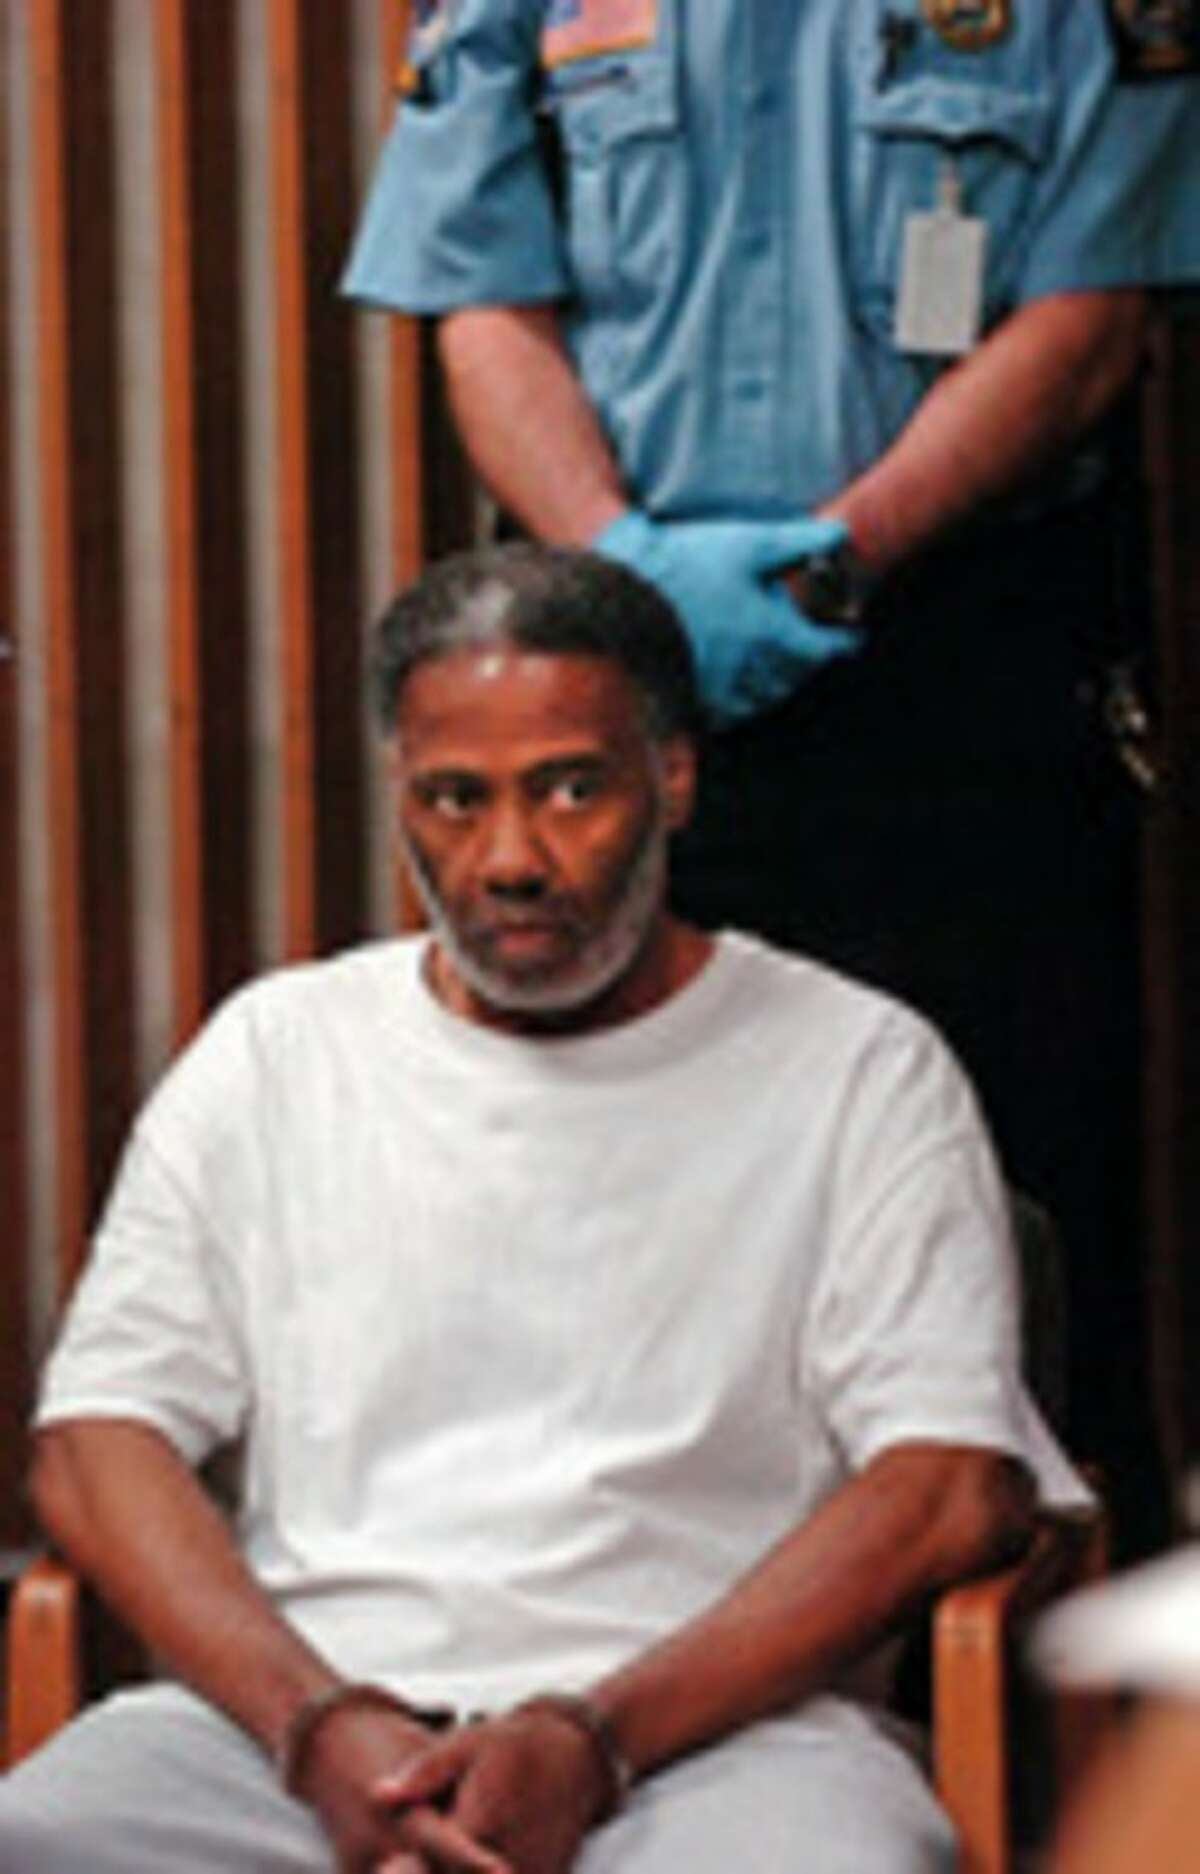 Hour file photo / Erik Trautmann Pernell McBride is being held on a one million dollar bond following his arraignment on charges of murder at Norwalk Superior Court Tuesday.